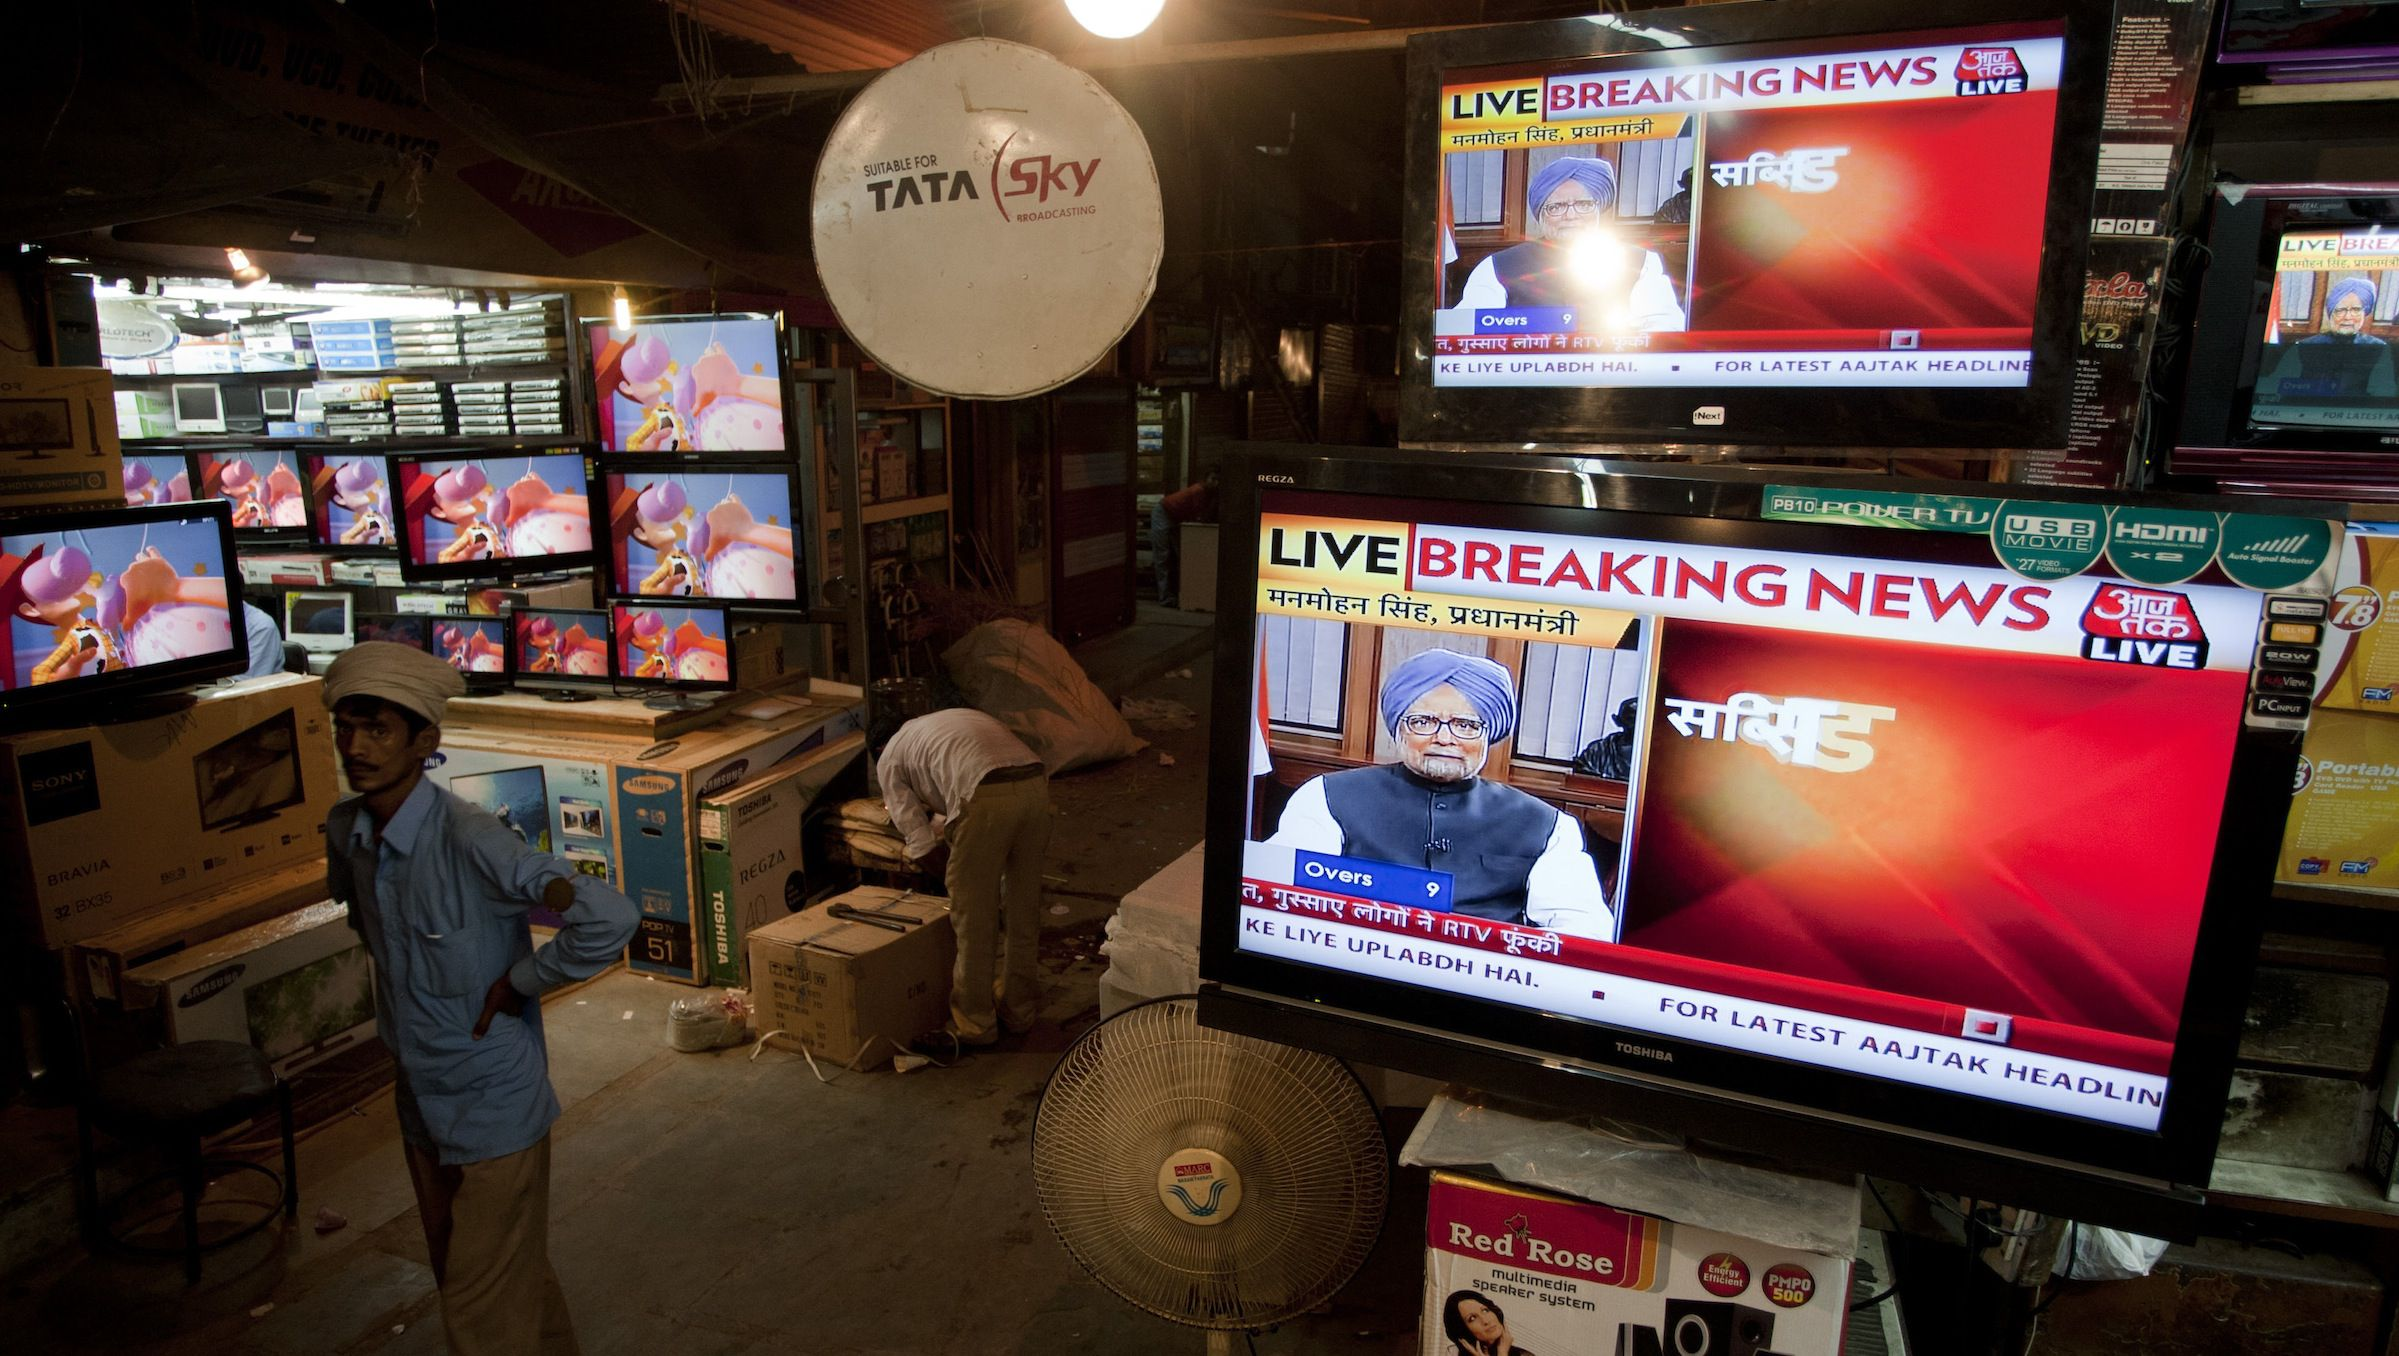 An Indian laborer walks past televisions showing Prime Minister Manmohan Singh's address to the nation, at a television store in New Delhi, India, Friday, Sept. 21, 2012. Singh's address to the nation came after the Trinamool Congress party pulled out of the ruling coalition protesting the decision to allow foreign retail chains to come into the country.  (AP Photo/Tsering Topgyal)